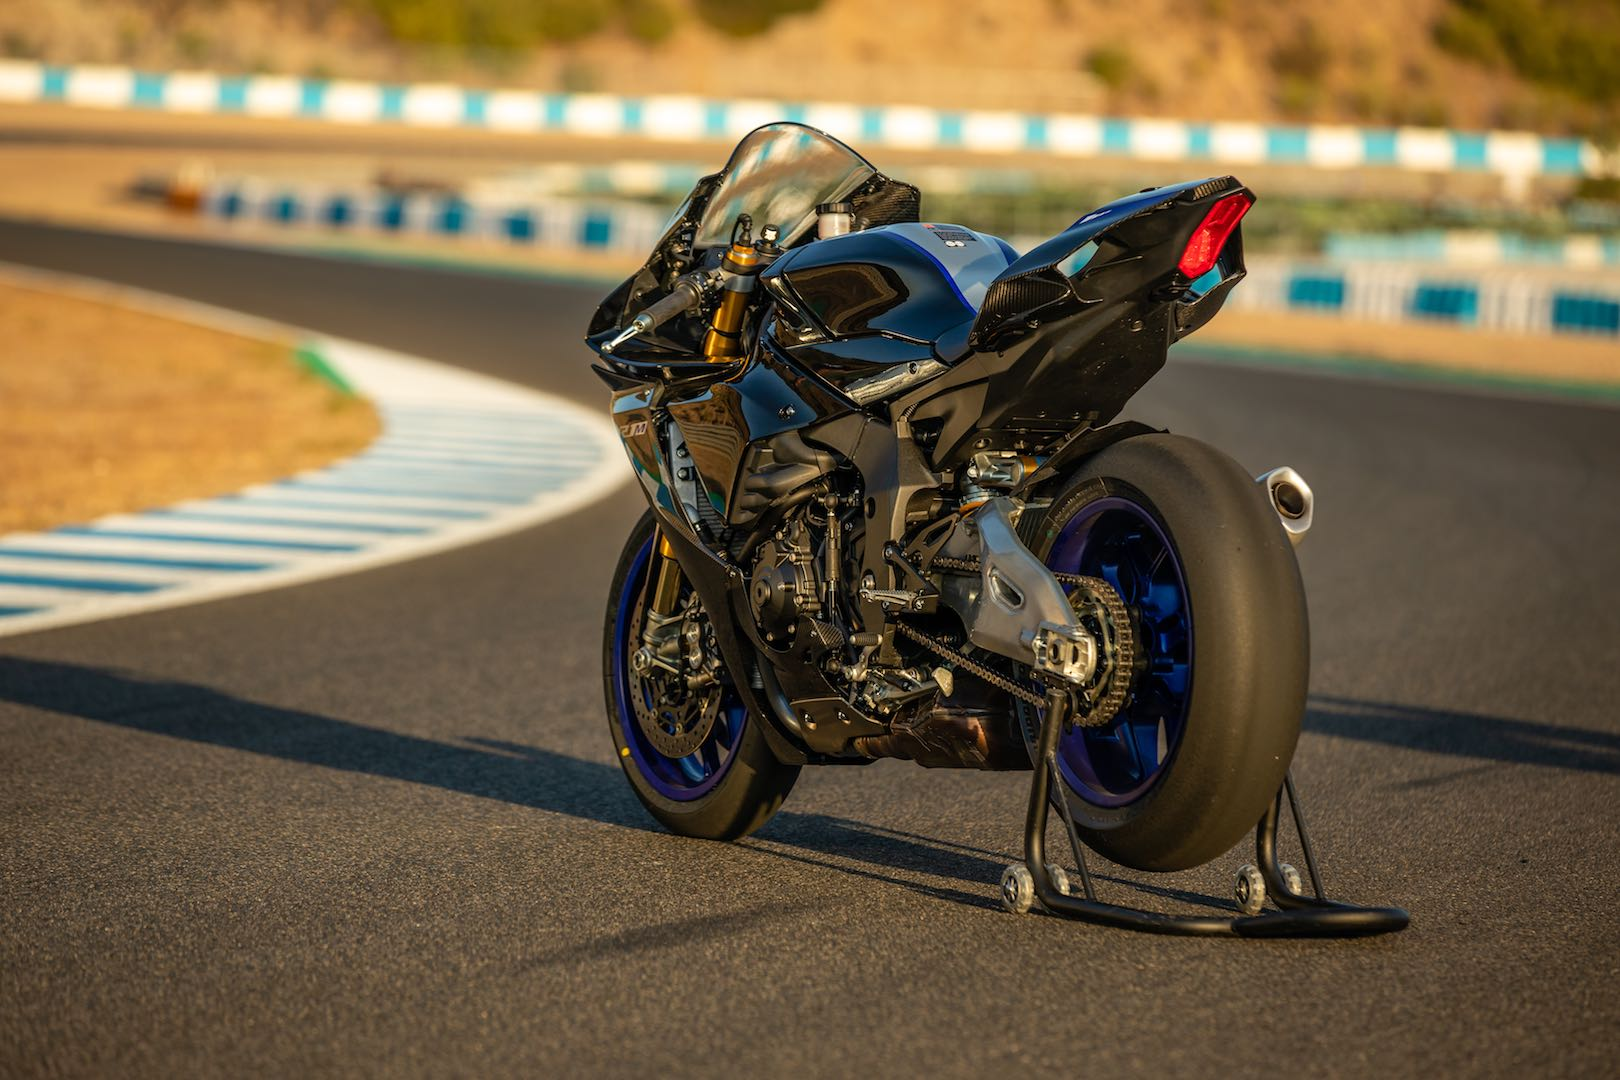 2020 Yamaha Yzf R1 And Yzf R1m Review 23 Fast Facts